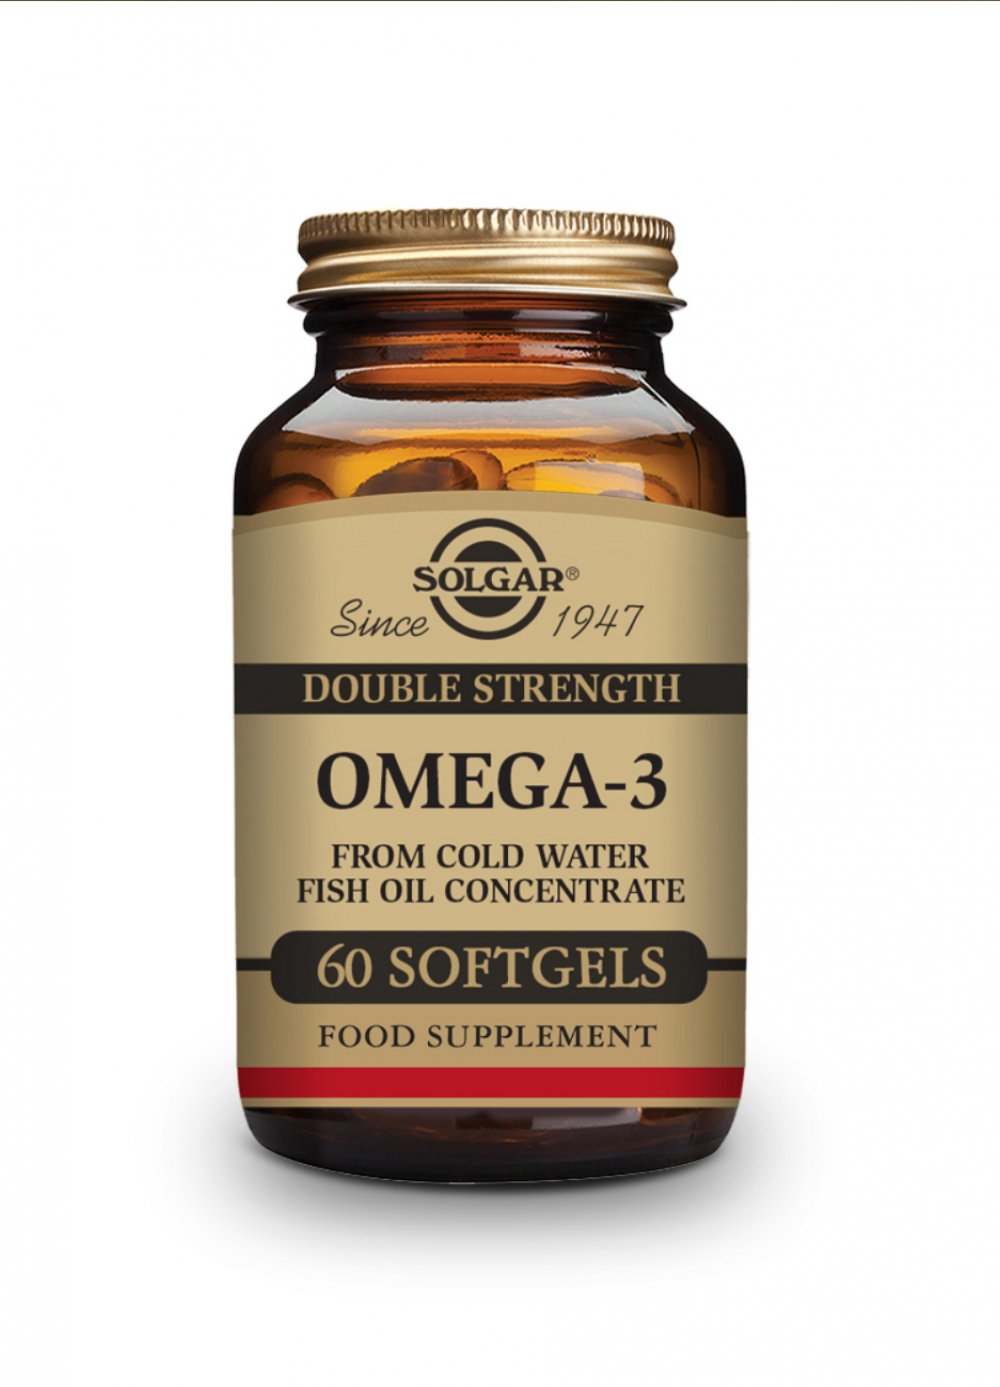 Solgar Double Strenght Omega-3 Fish Oil Concentrate 60 Softgels (96g)